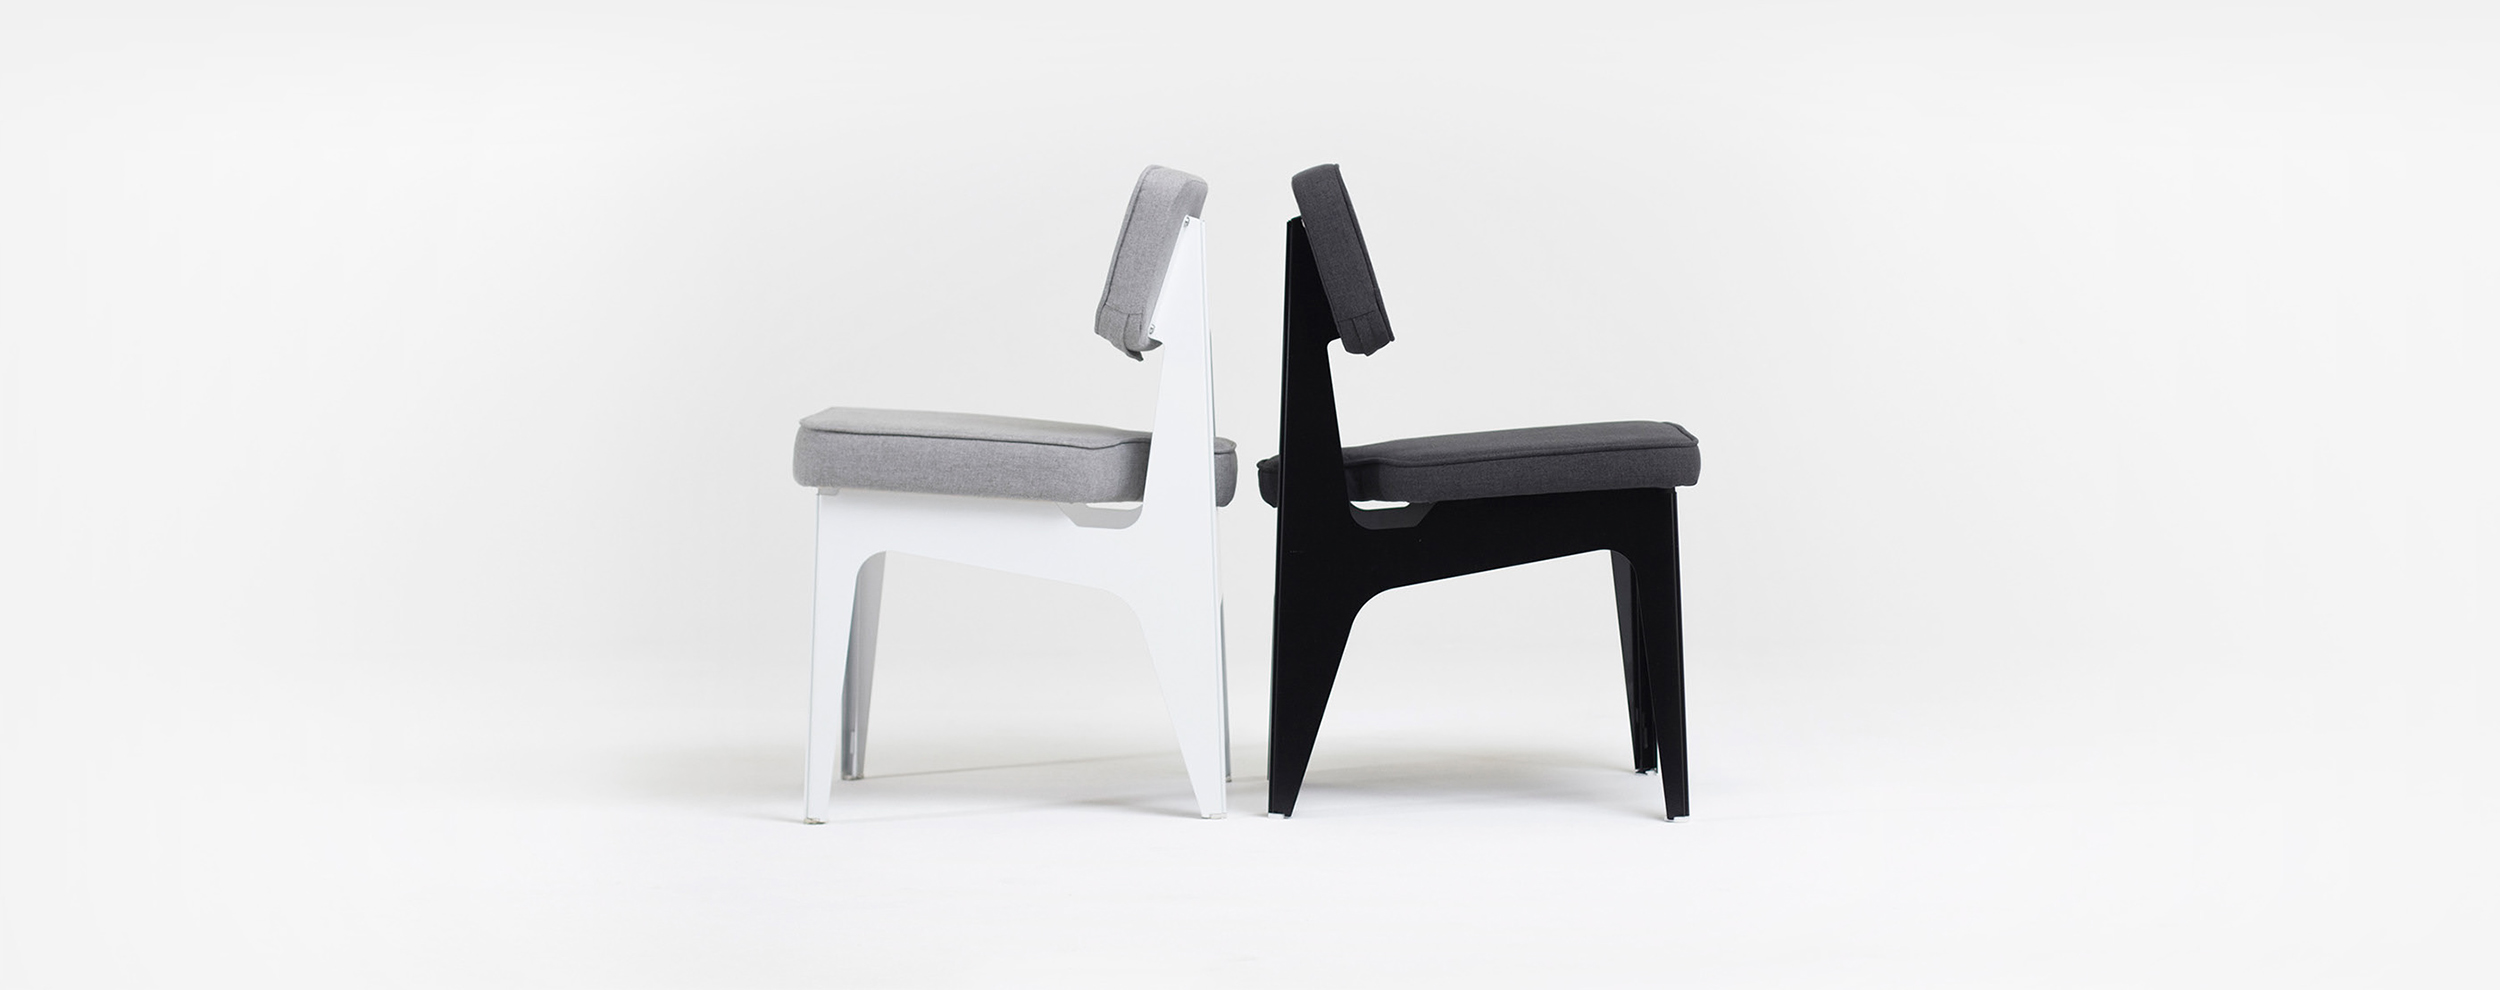 OULA chair. Figuron. Design by Alexander Zhukovsky.